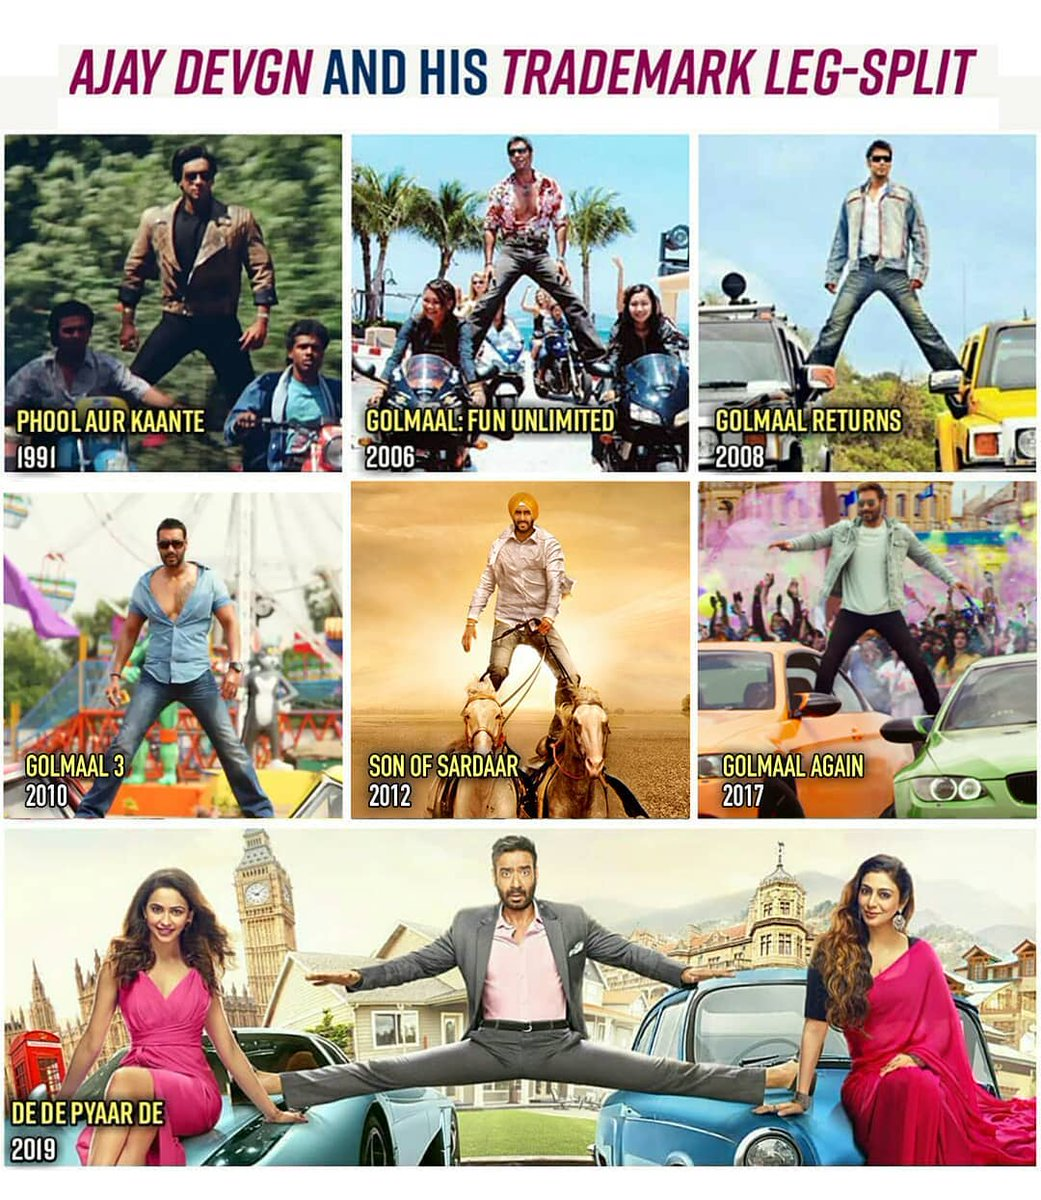 Which is your favorite? For more updates follow @aahomusic  #aaho #aahomusic #MittranDiYesHai #movies #theatre #video #movie #film #films #videos #actor #actress #cinema #dvd #star #moviestar #ajaydevgan #golmaal #bollywood